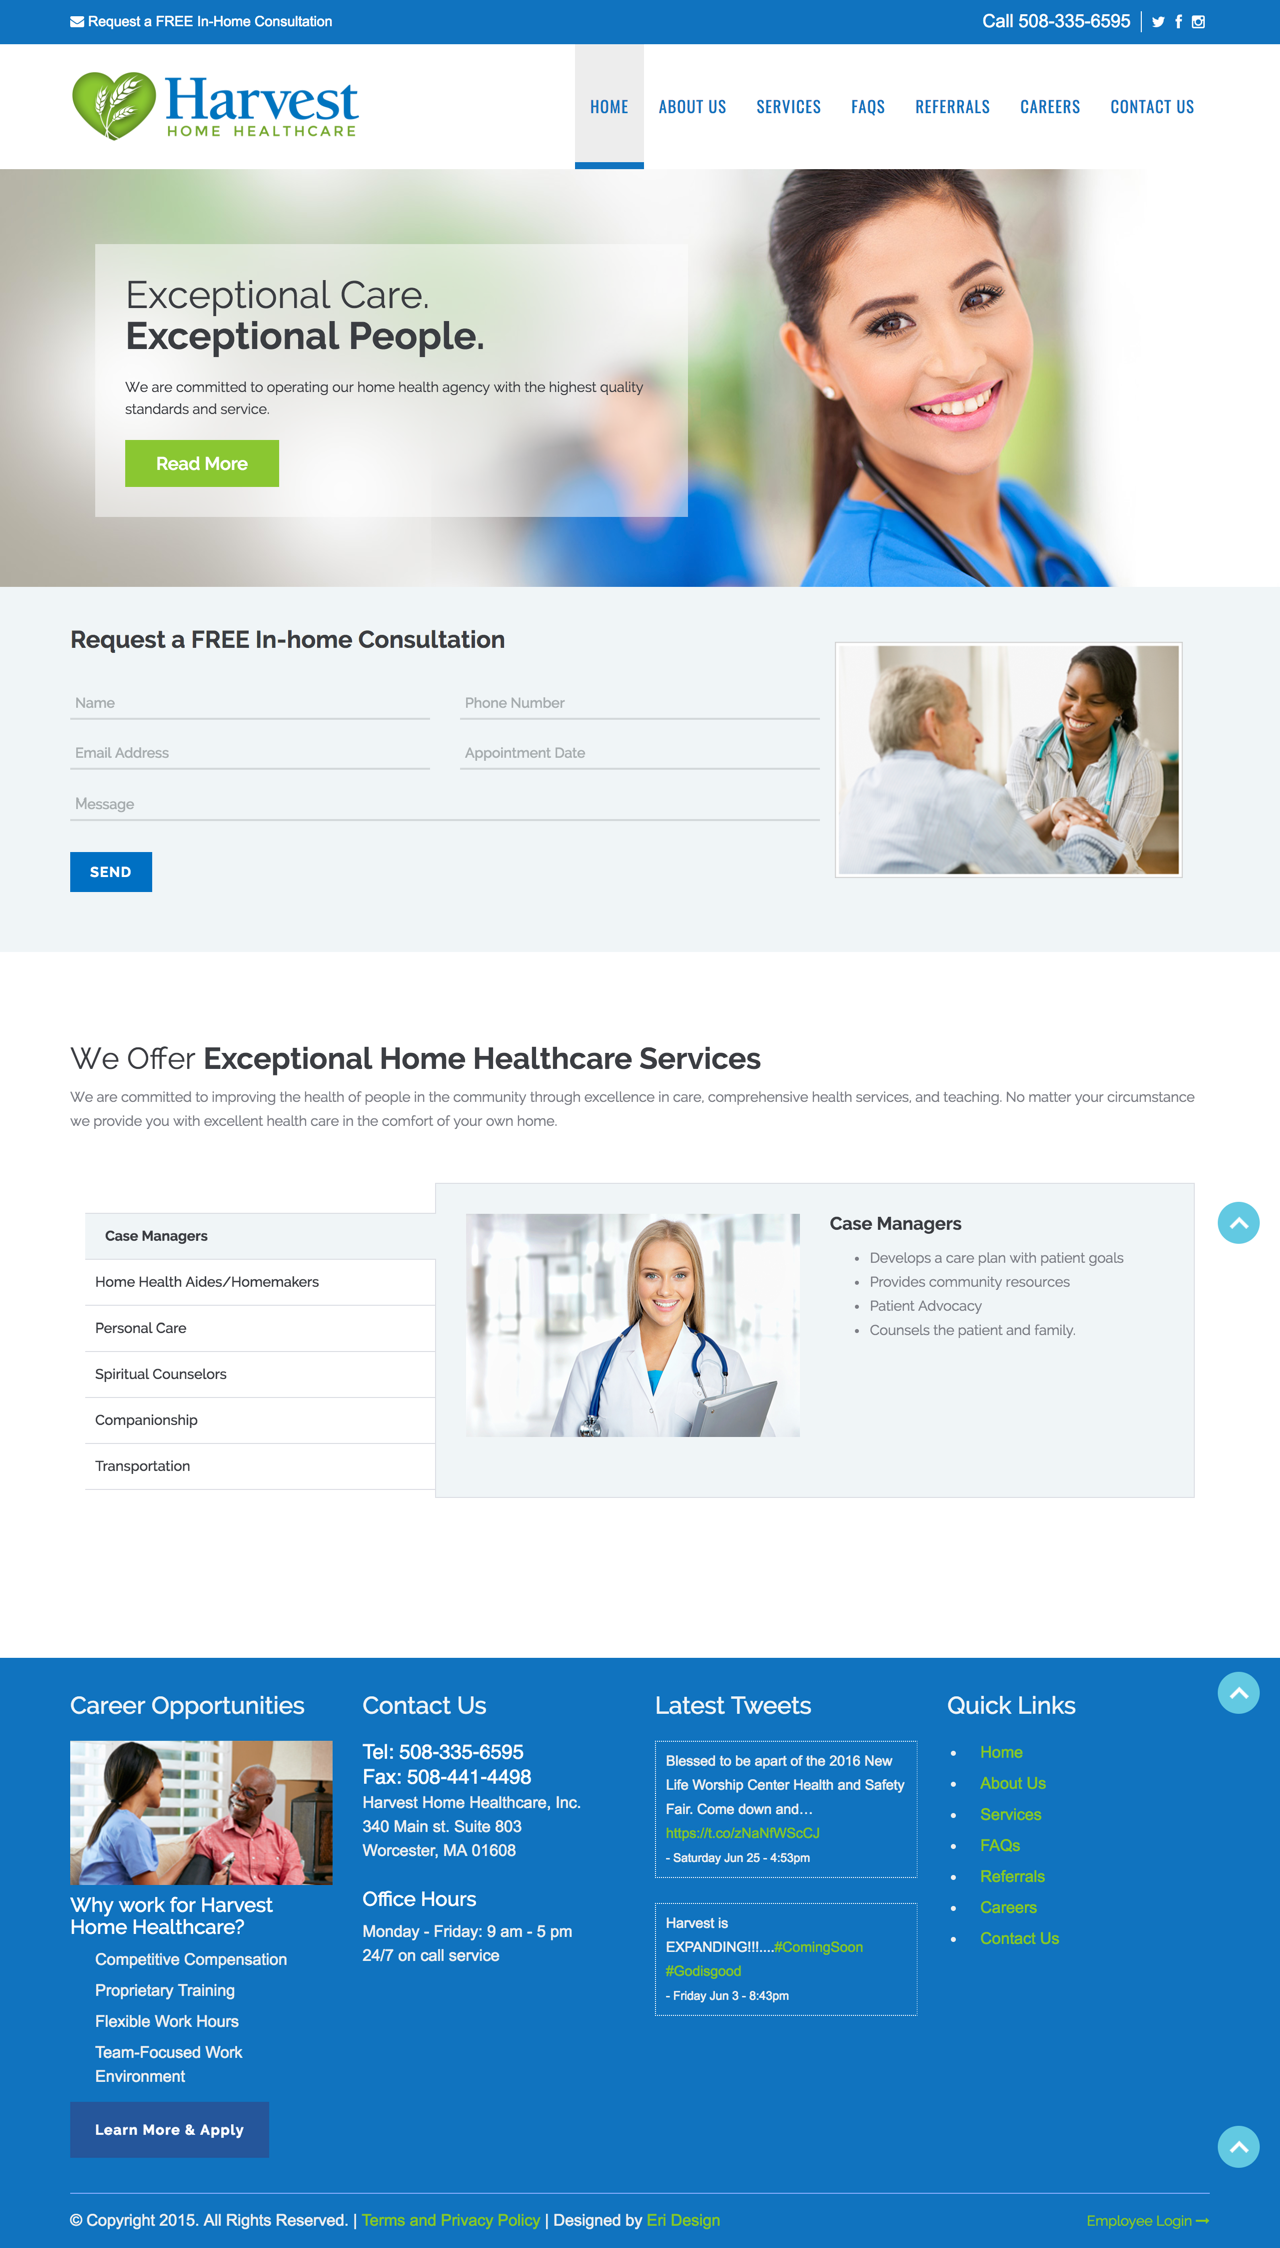 Harvest Home Healthcare Landing Page